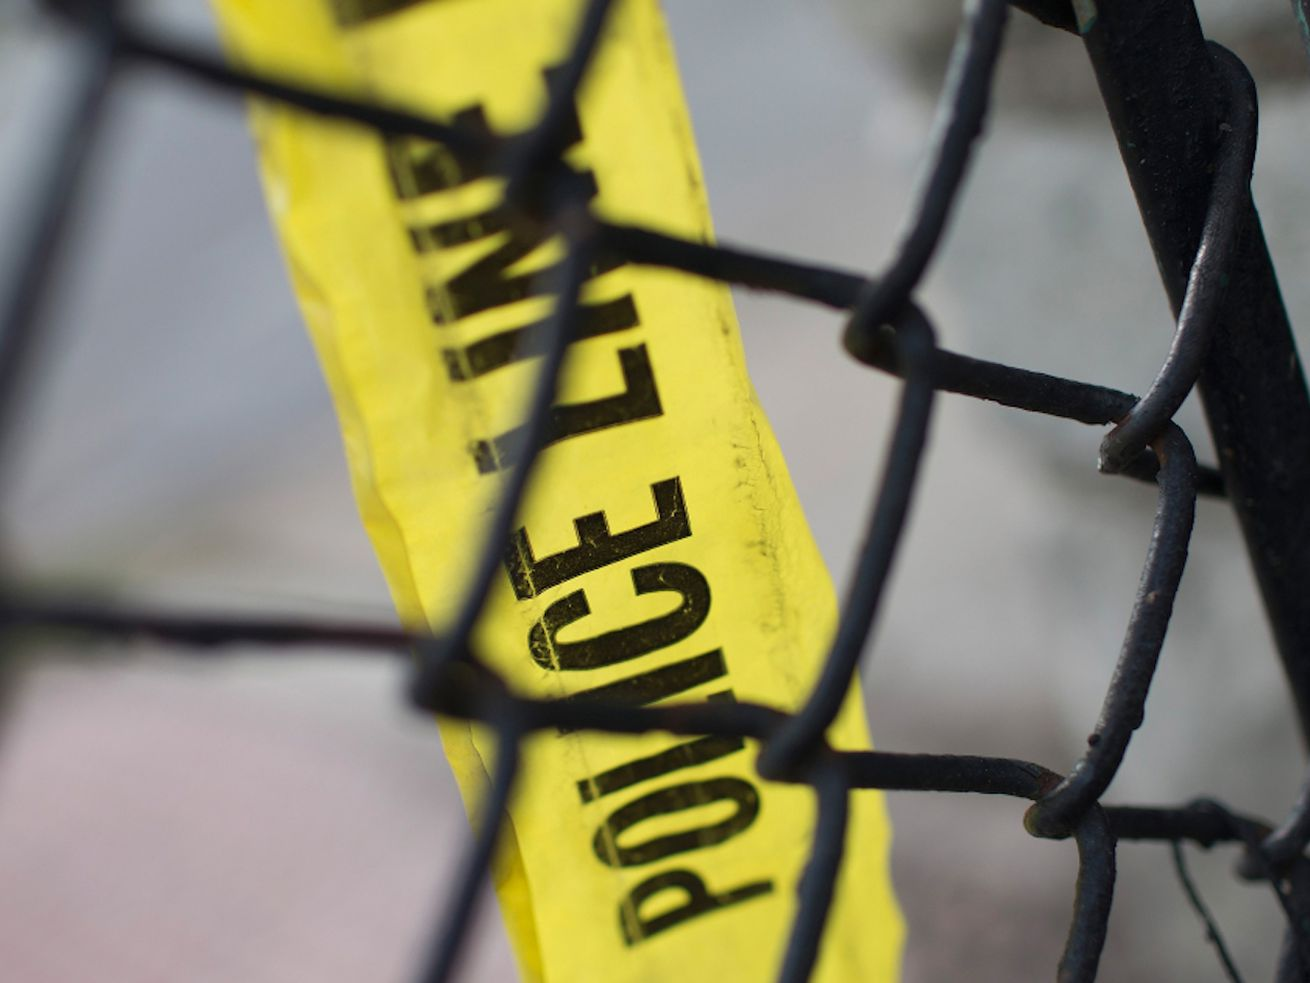 A shooting left two people wounded, including a teenage girl, May 24, 2021, in South Chicago.